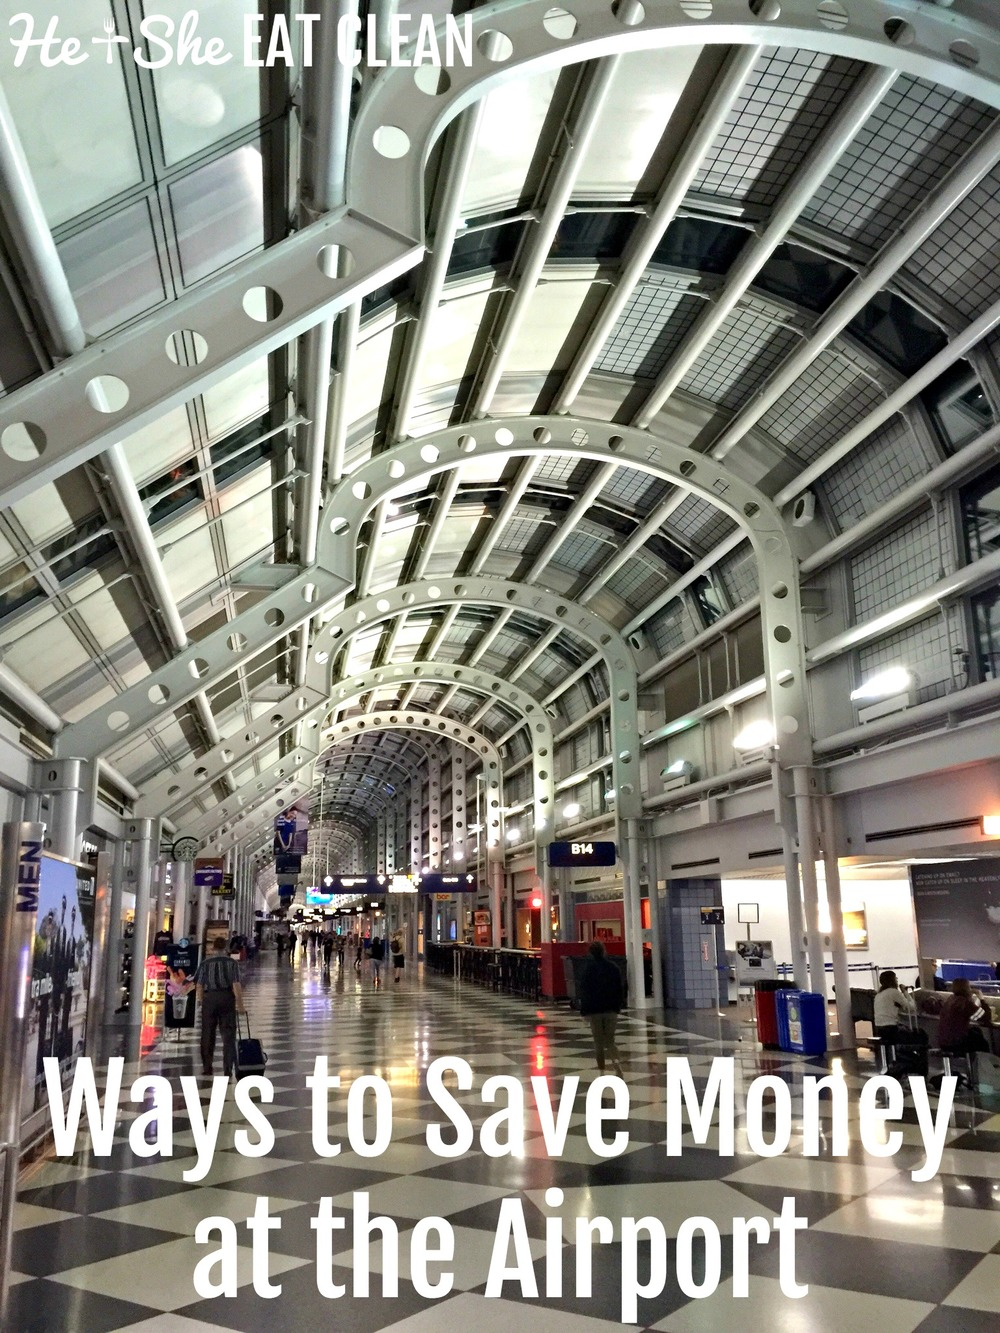 Ways to Save Money When Traveling - At The Airport | He and She Eat Clean